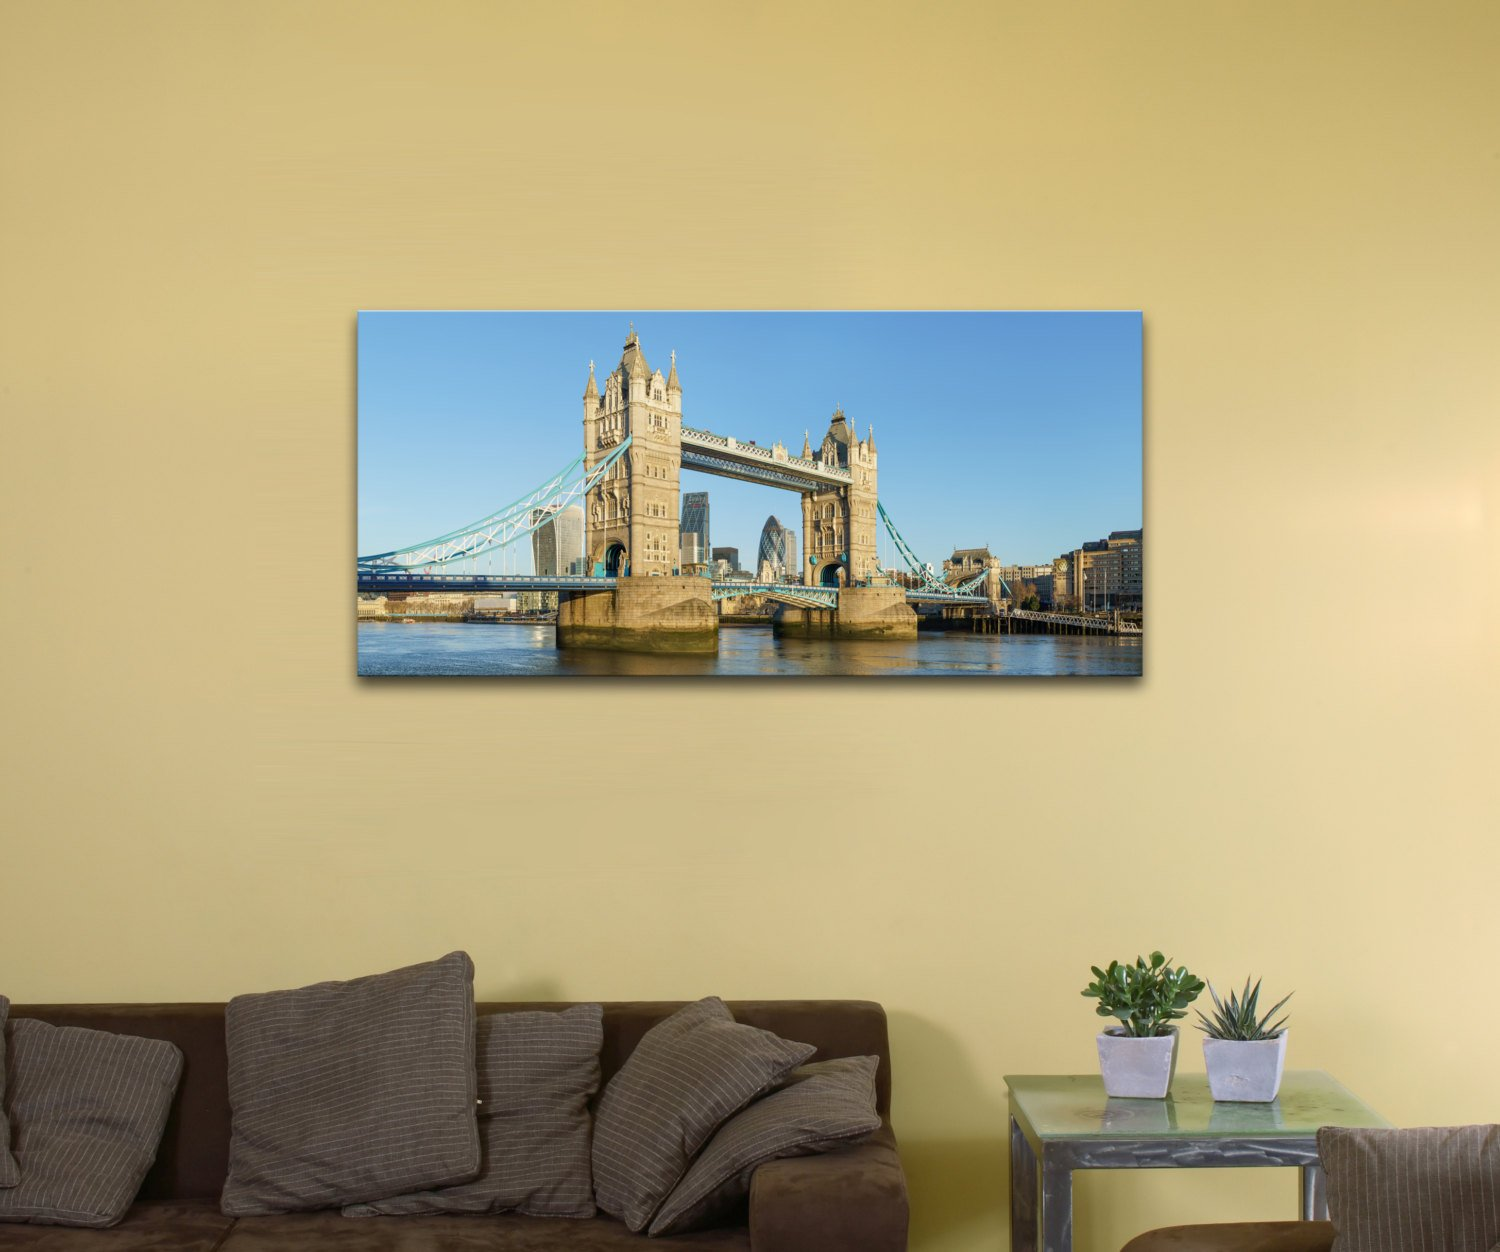 Tower Bridge, United Kingdom (10″ x 20″) – Canvas Wrap Print